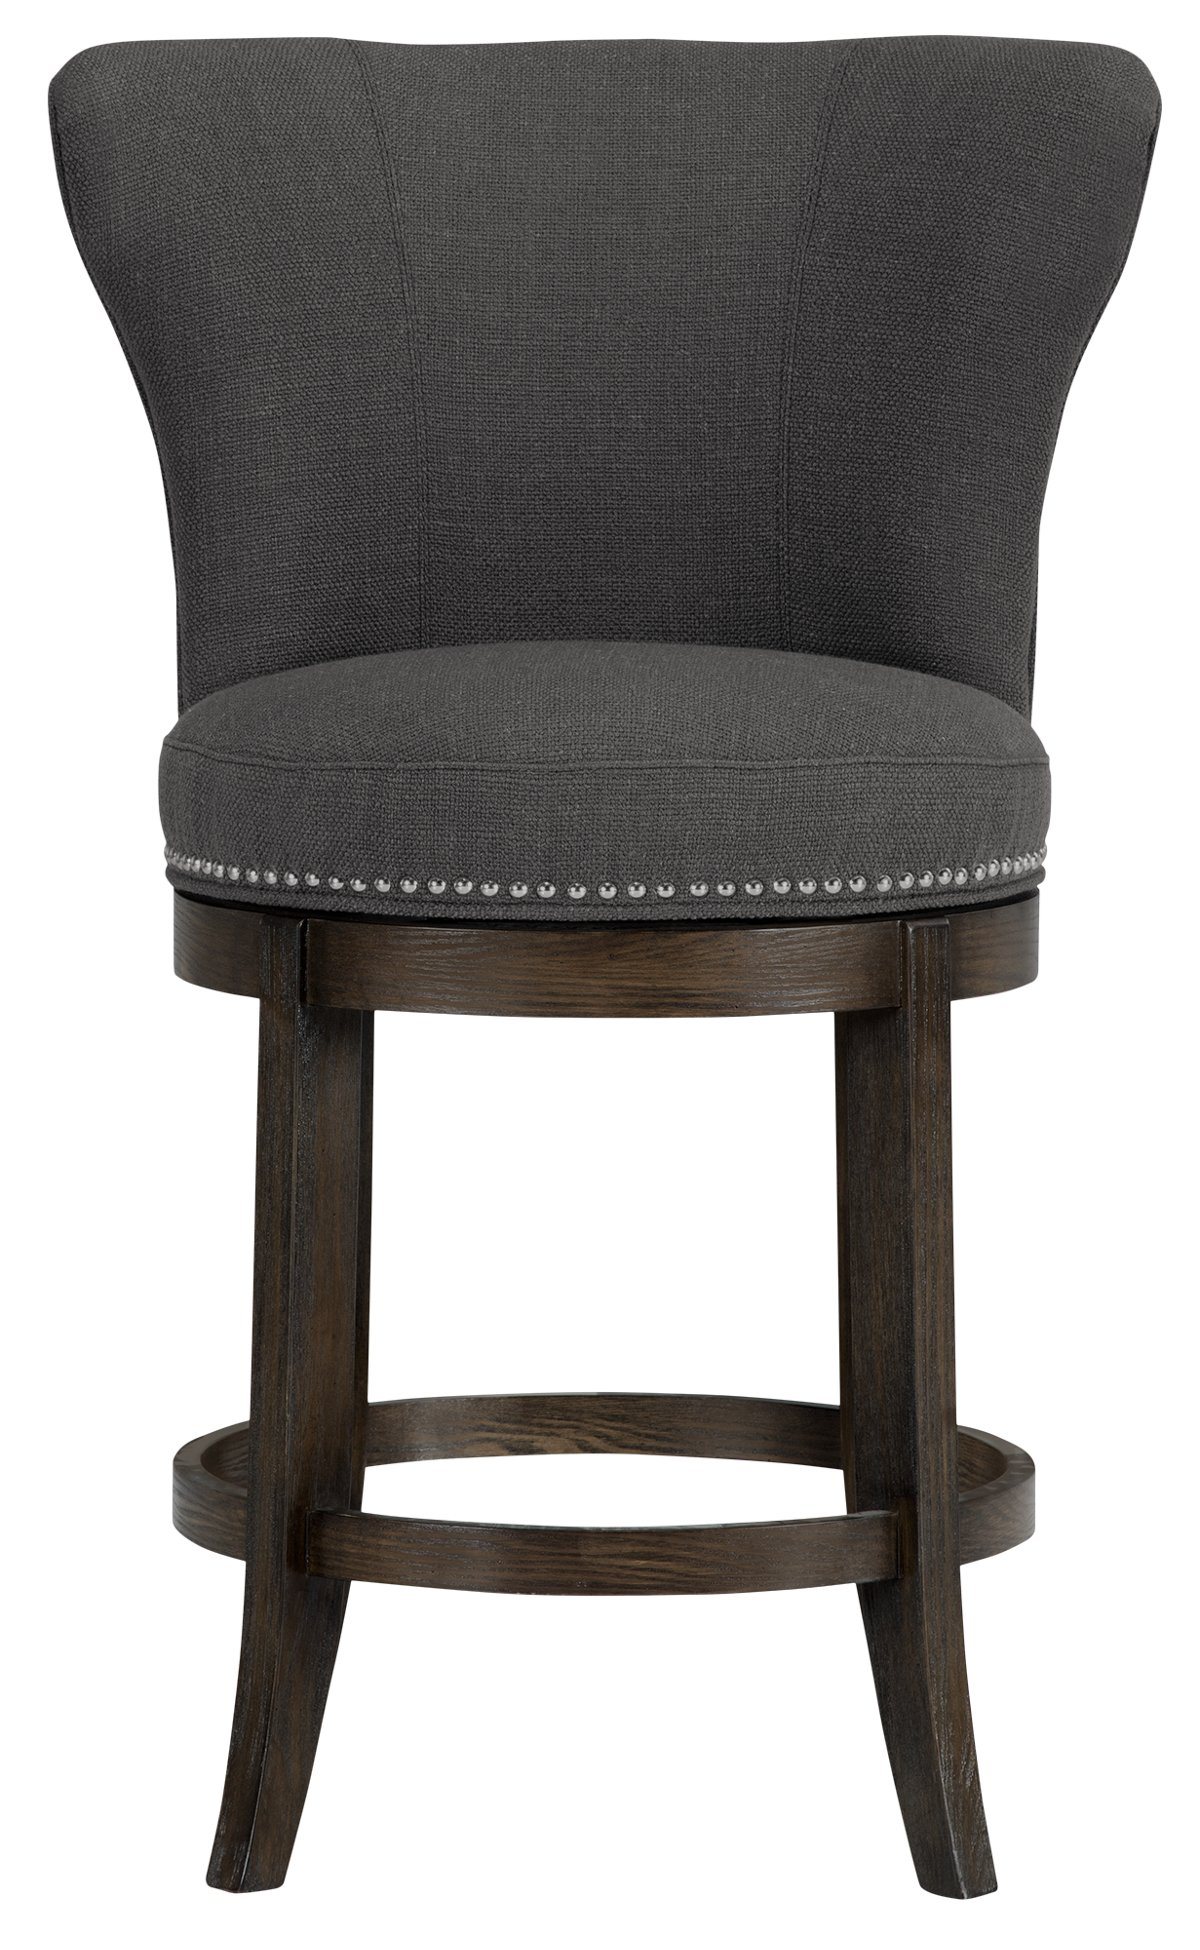 "Cayden Dark Gray Fabric 24"" Swivel Barstool"